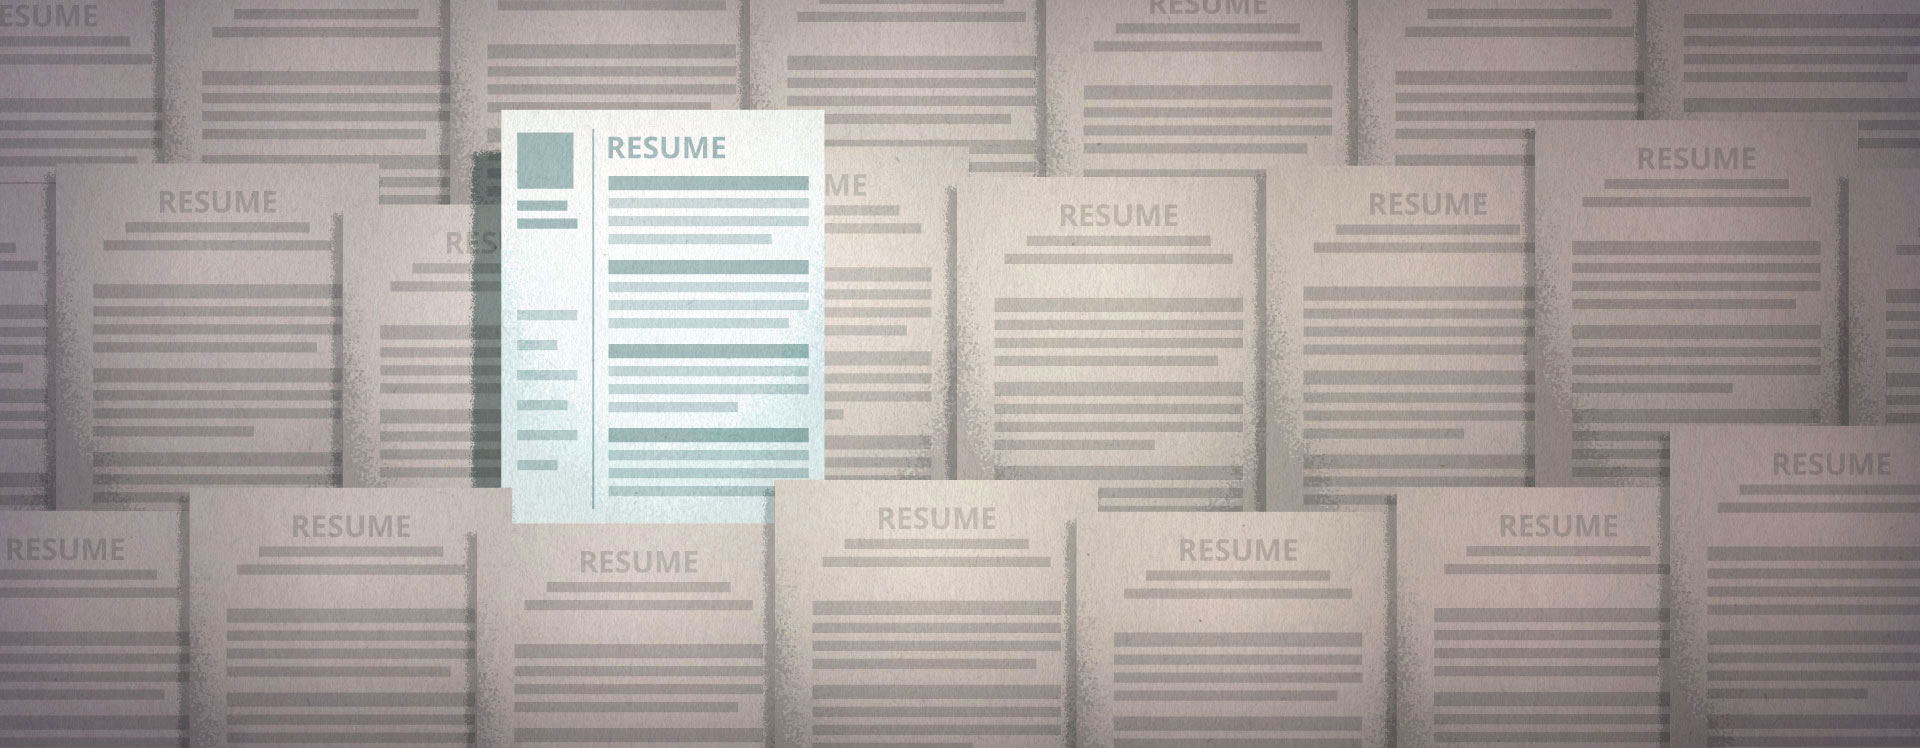 Data Science Resume  Resumes That Stand Out